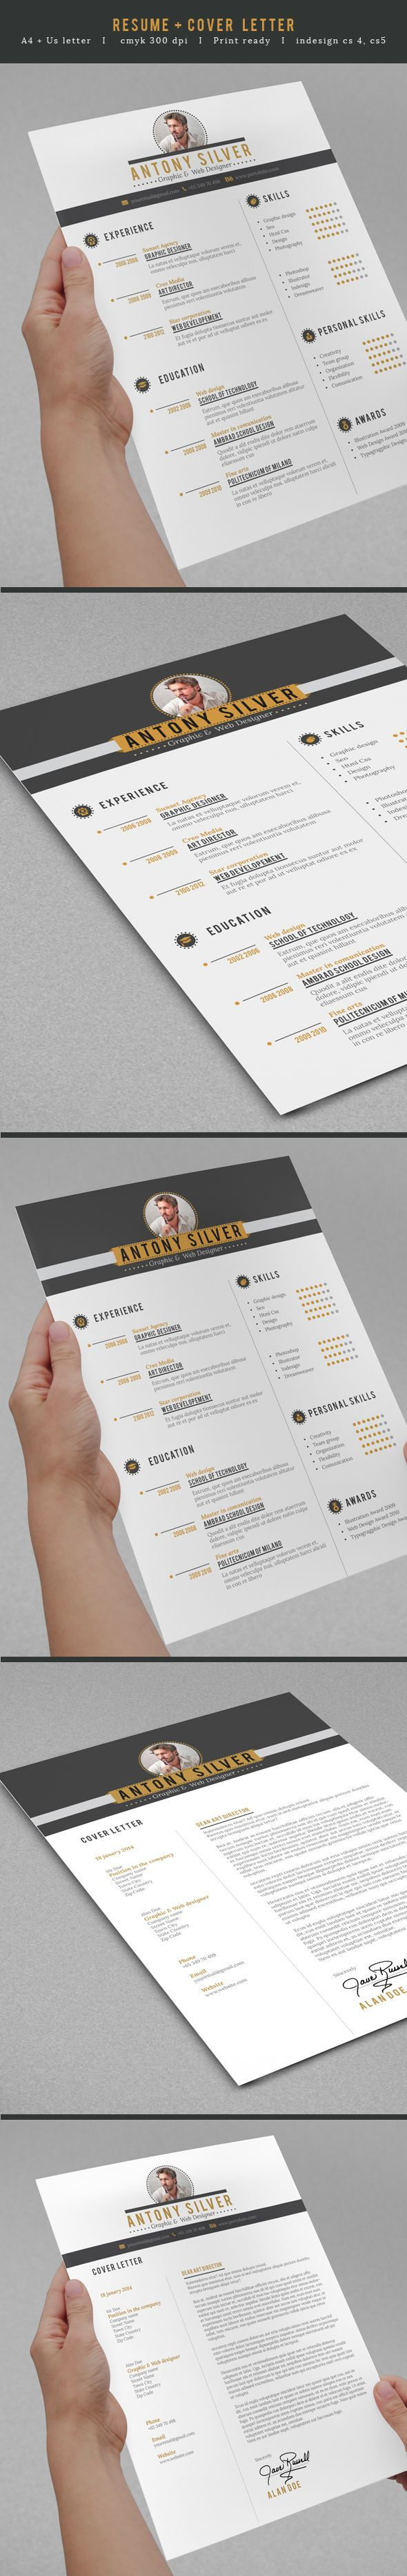 Resume Resumes Stationery Download here httpsgraphicrivernetitem